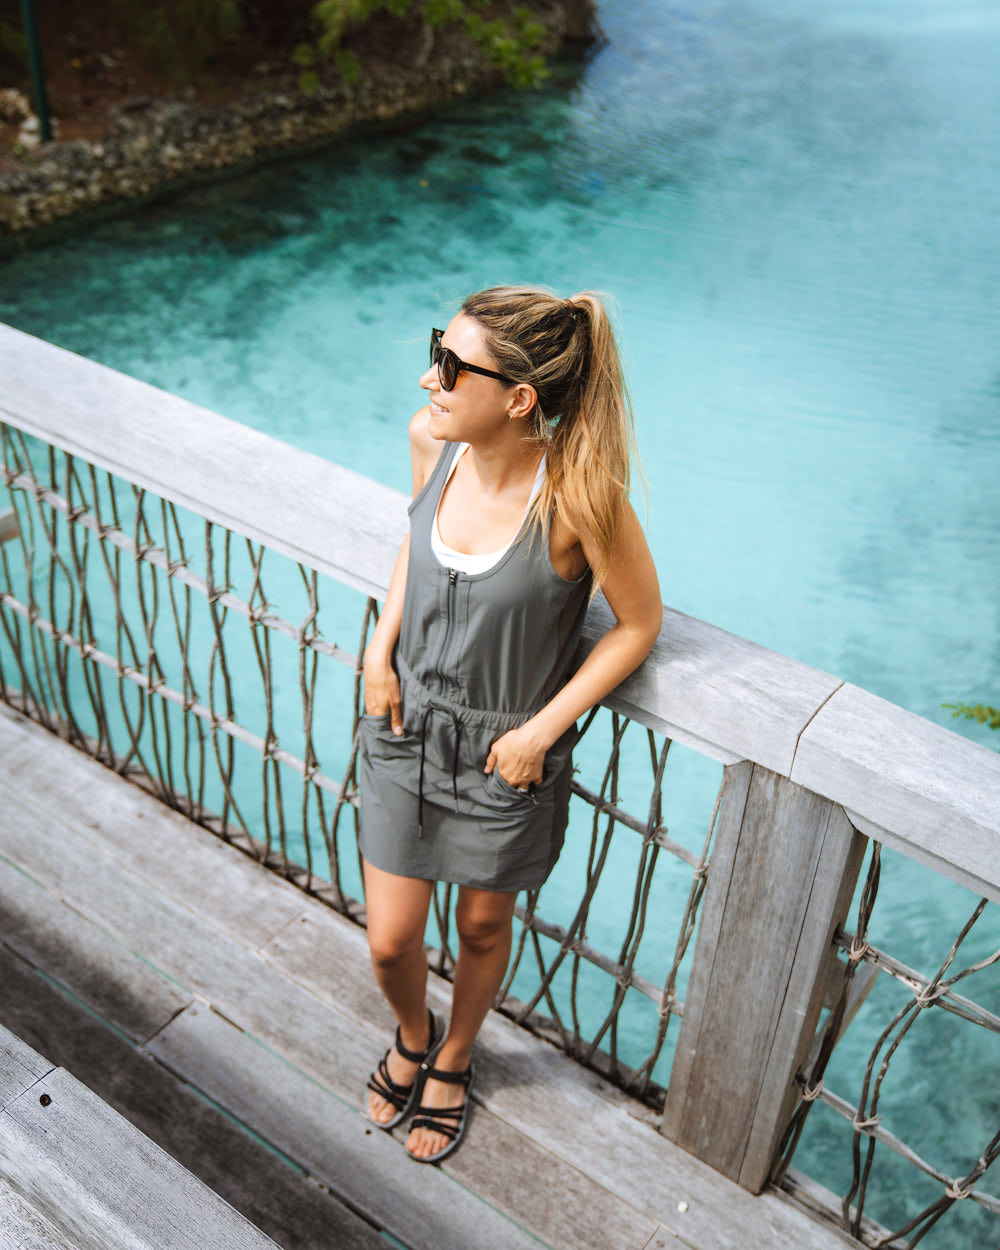 Summer Activewear and Hiking Styles from Athleta Renee Roaming 5